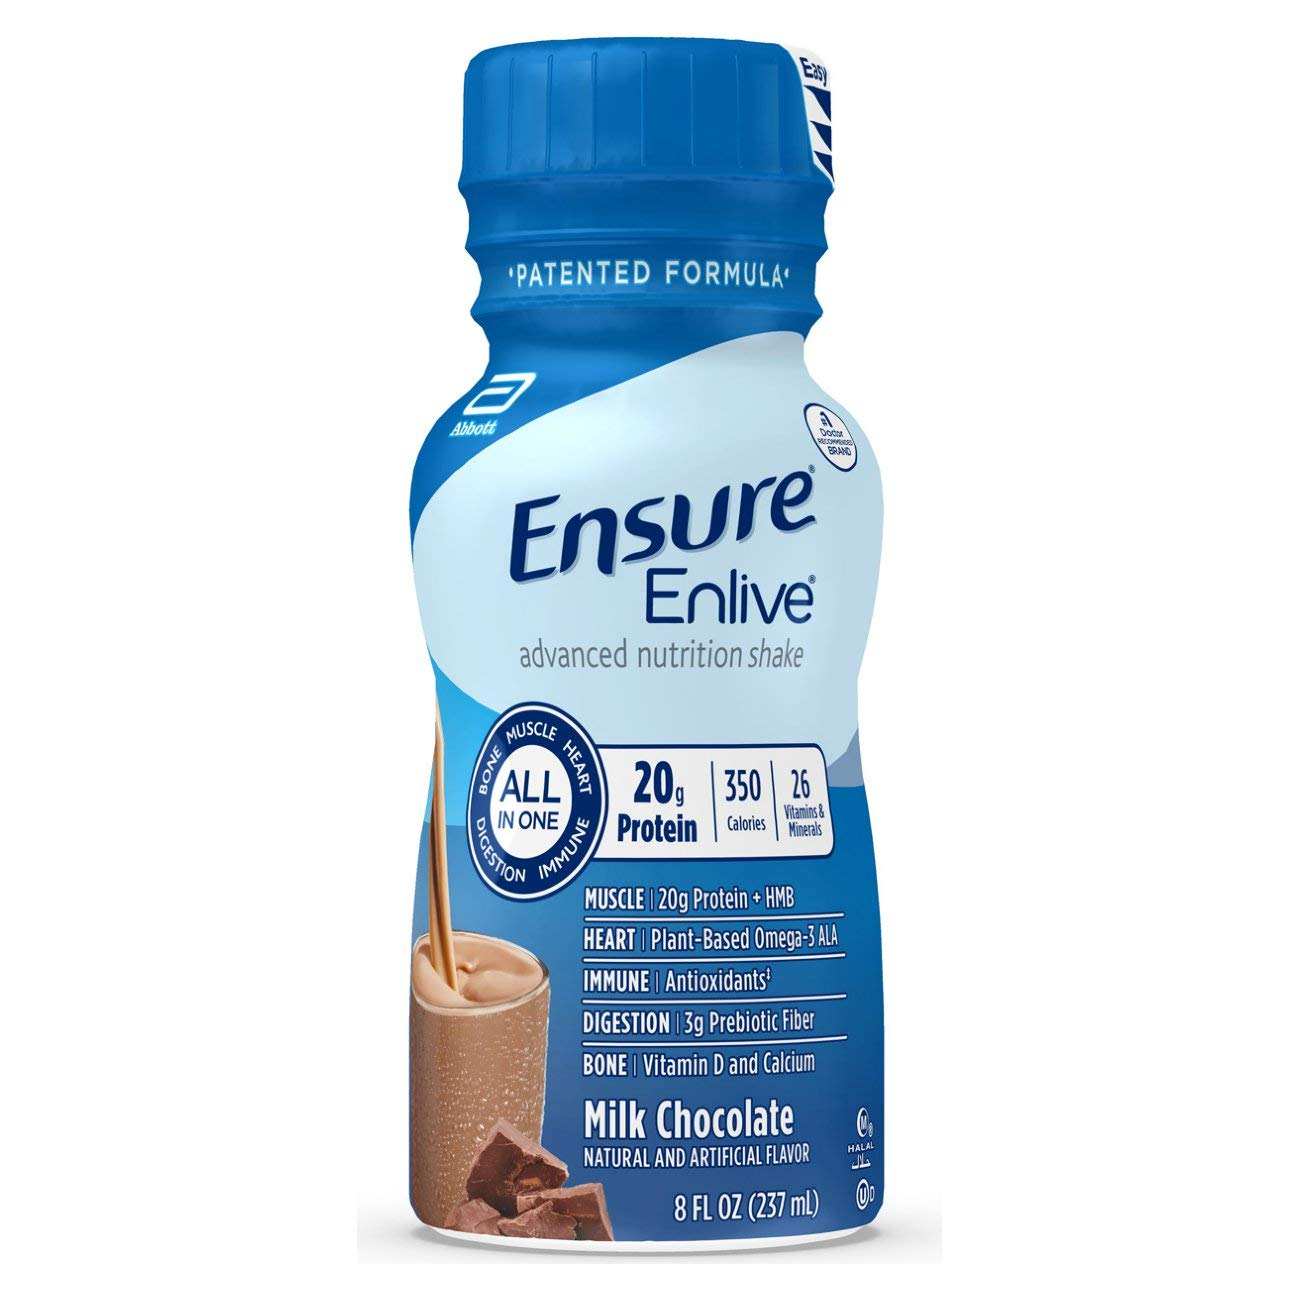 Ensure Enlive Meal Replacement Shake, 20g Protein, 350 Calories, Advanced Nutrition Protein Shake, Milk Chocolate, 8 fl oz, 16 Bottles